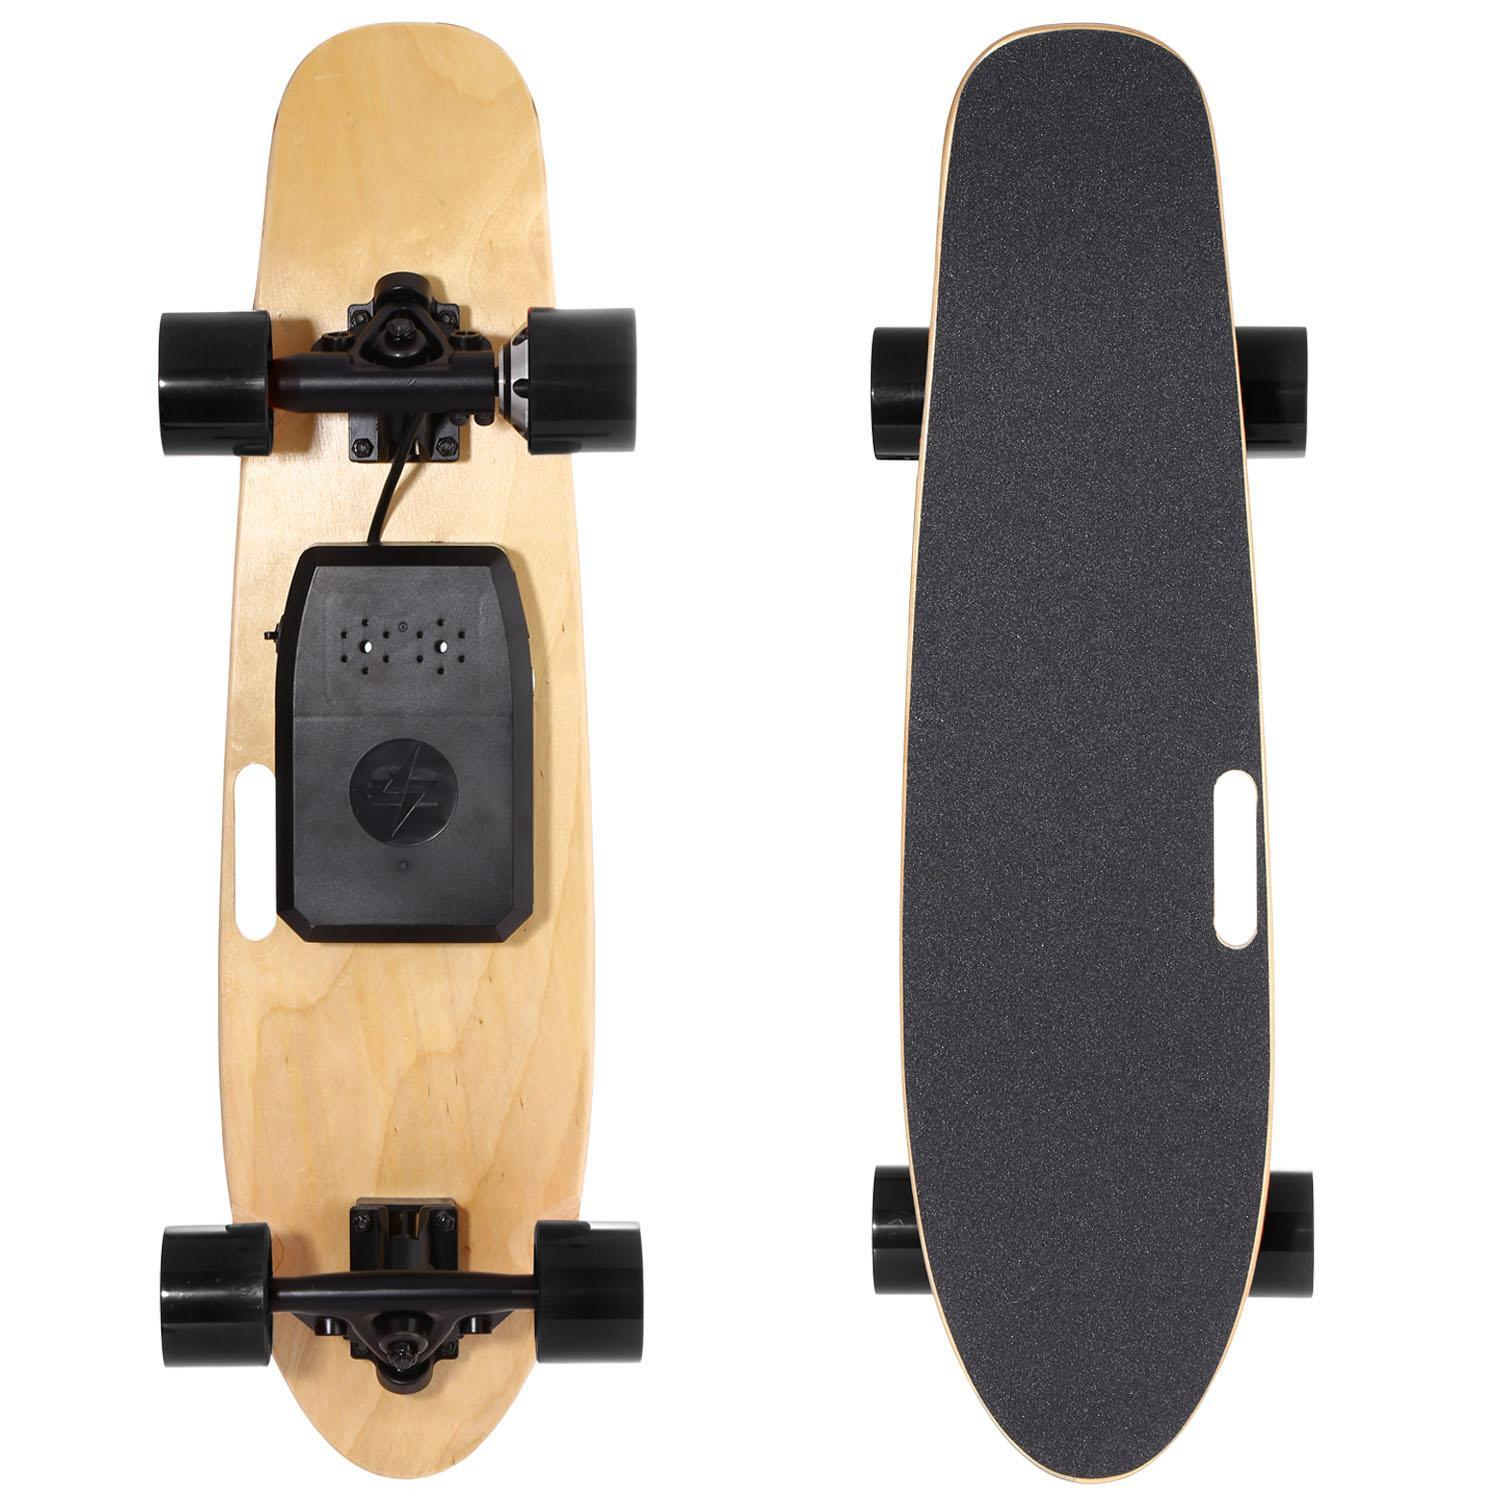 Adults and Boys Electric Skateboard Bluetooth Board with Remote Controller FOR 60kg BLLK by